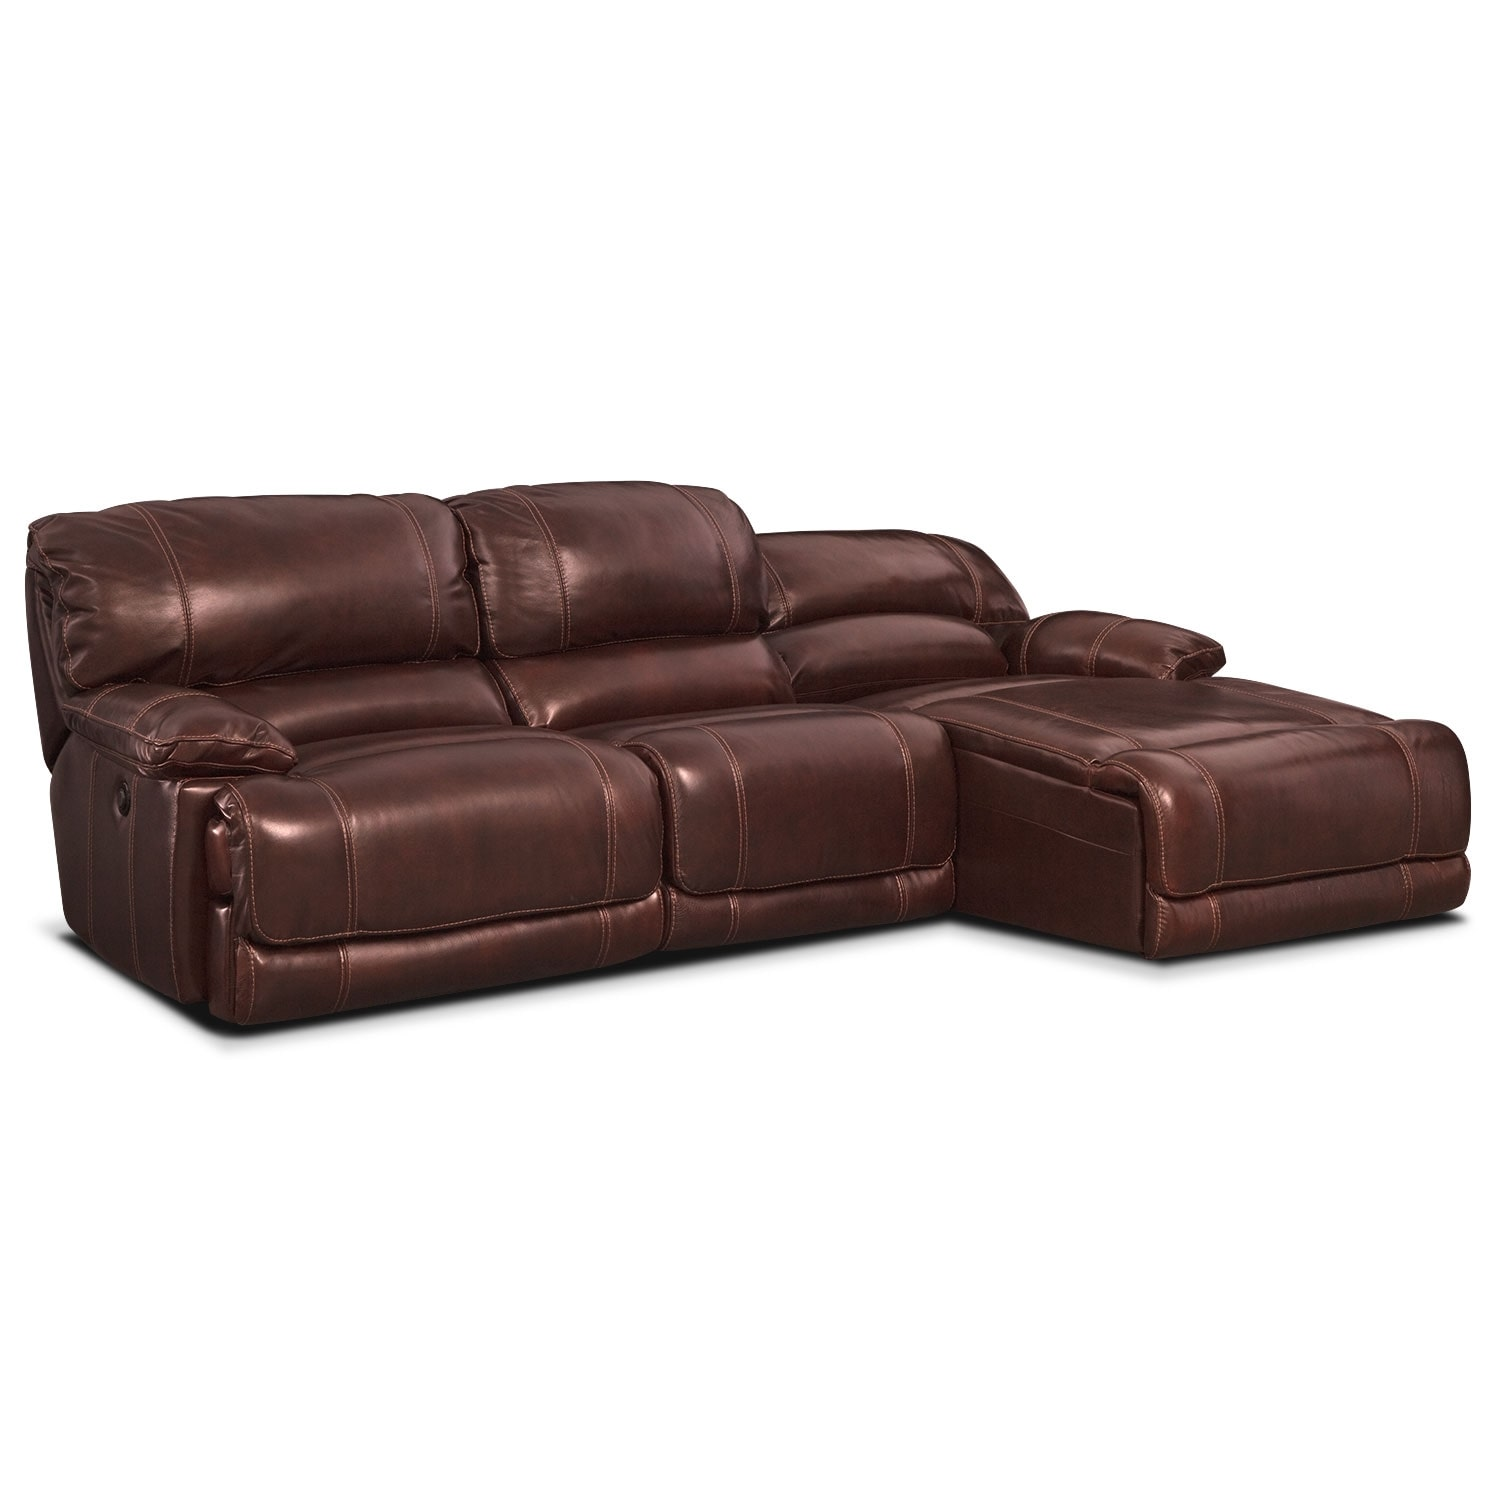 St malo 3 piece power reclining sectional with right for Burgundy chaise